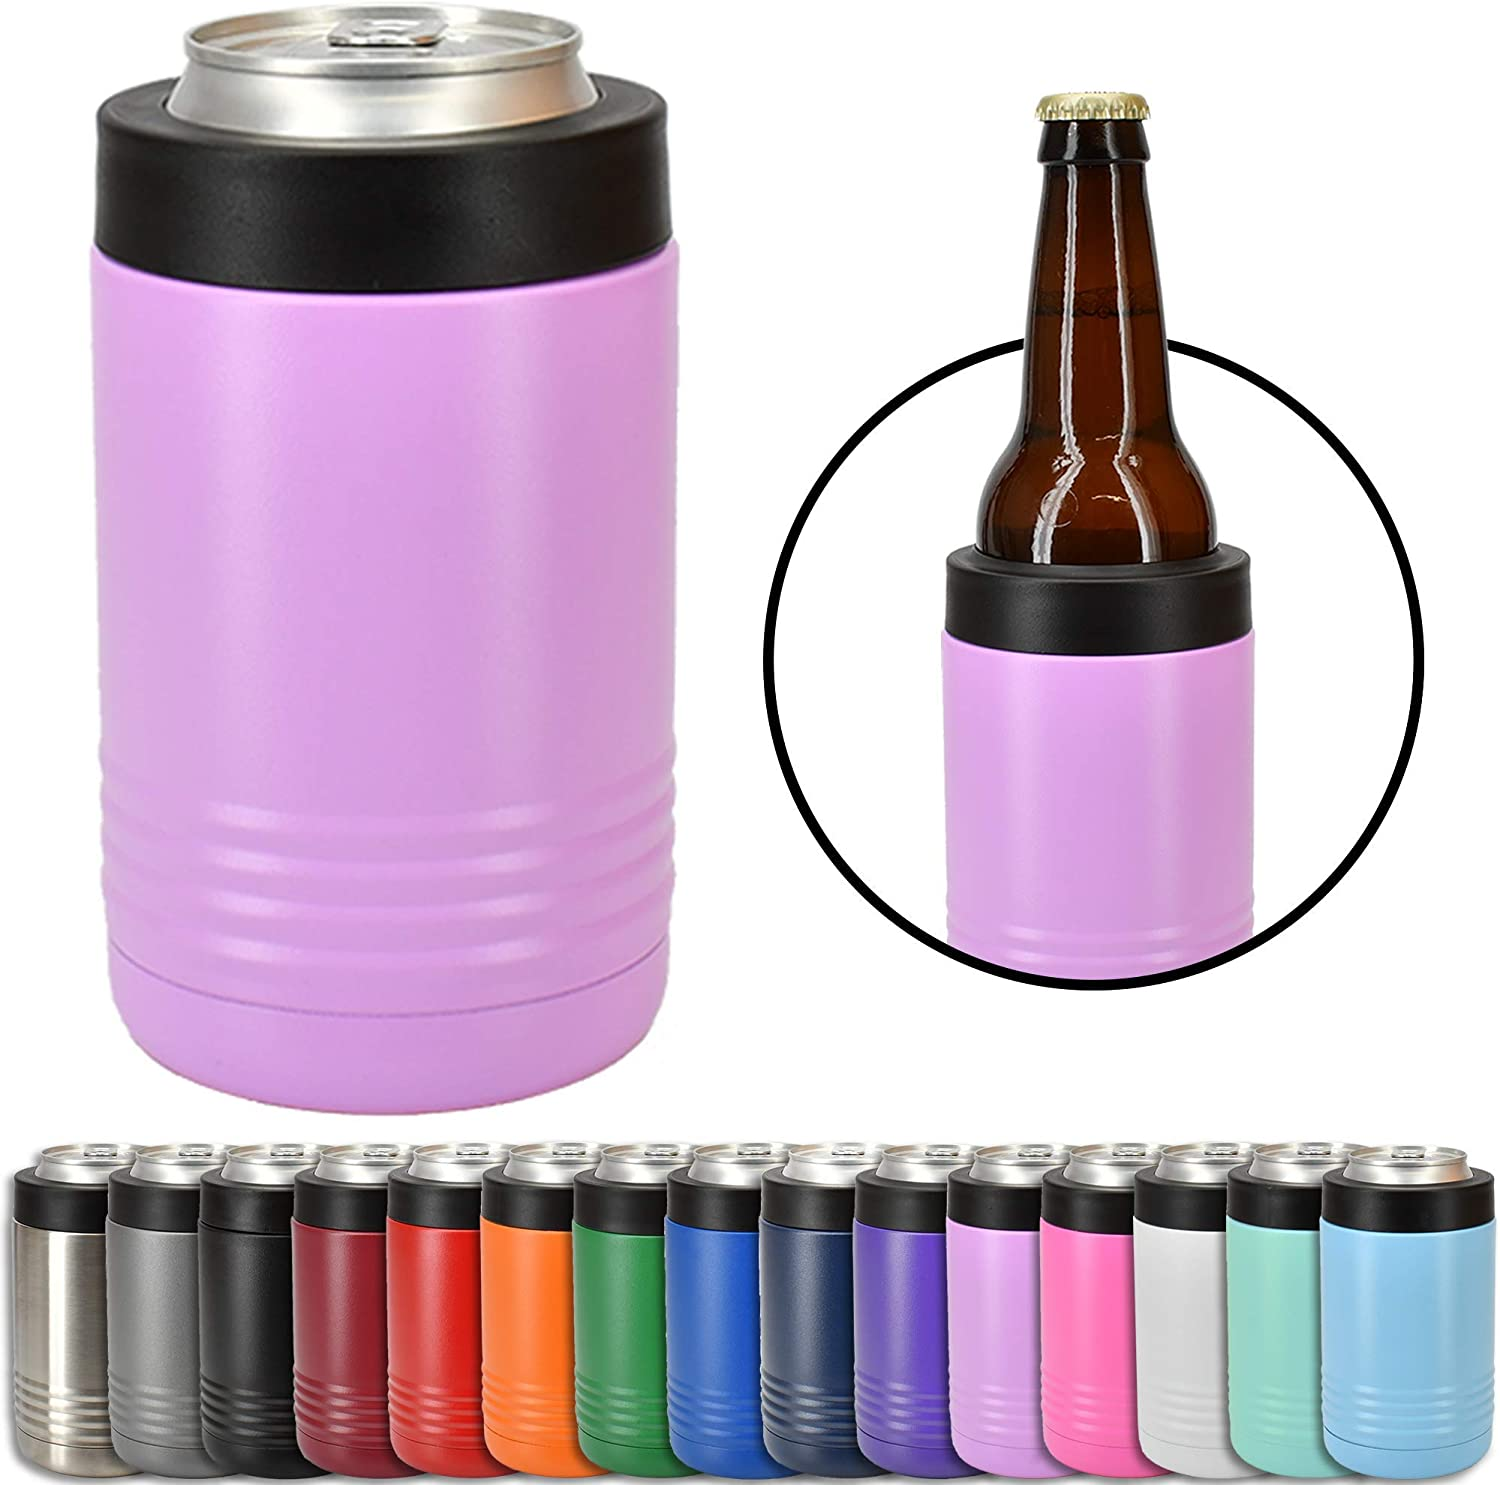 Clear Water Home Goods - 12 oz Stainless Steel Double Wall Vacuum Insulated Can or Bottle Cooler Keeps Beverage Cold for Hours - Powder Coated Light Purple